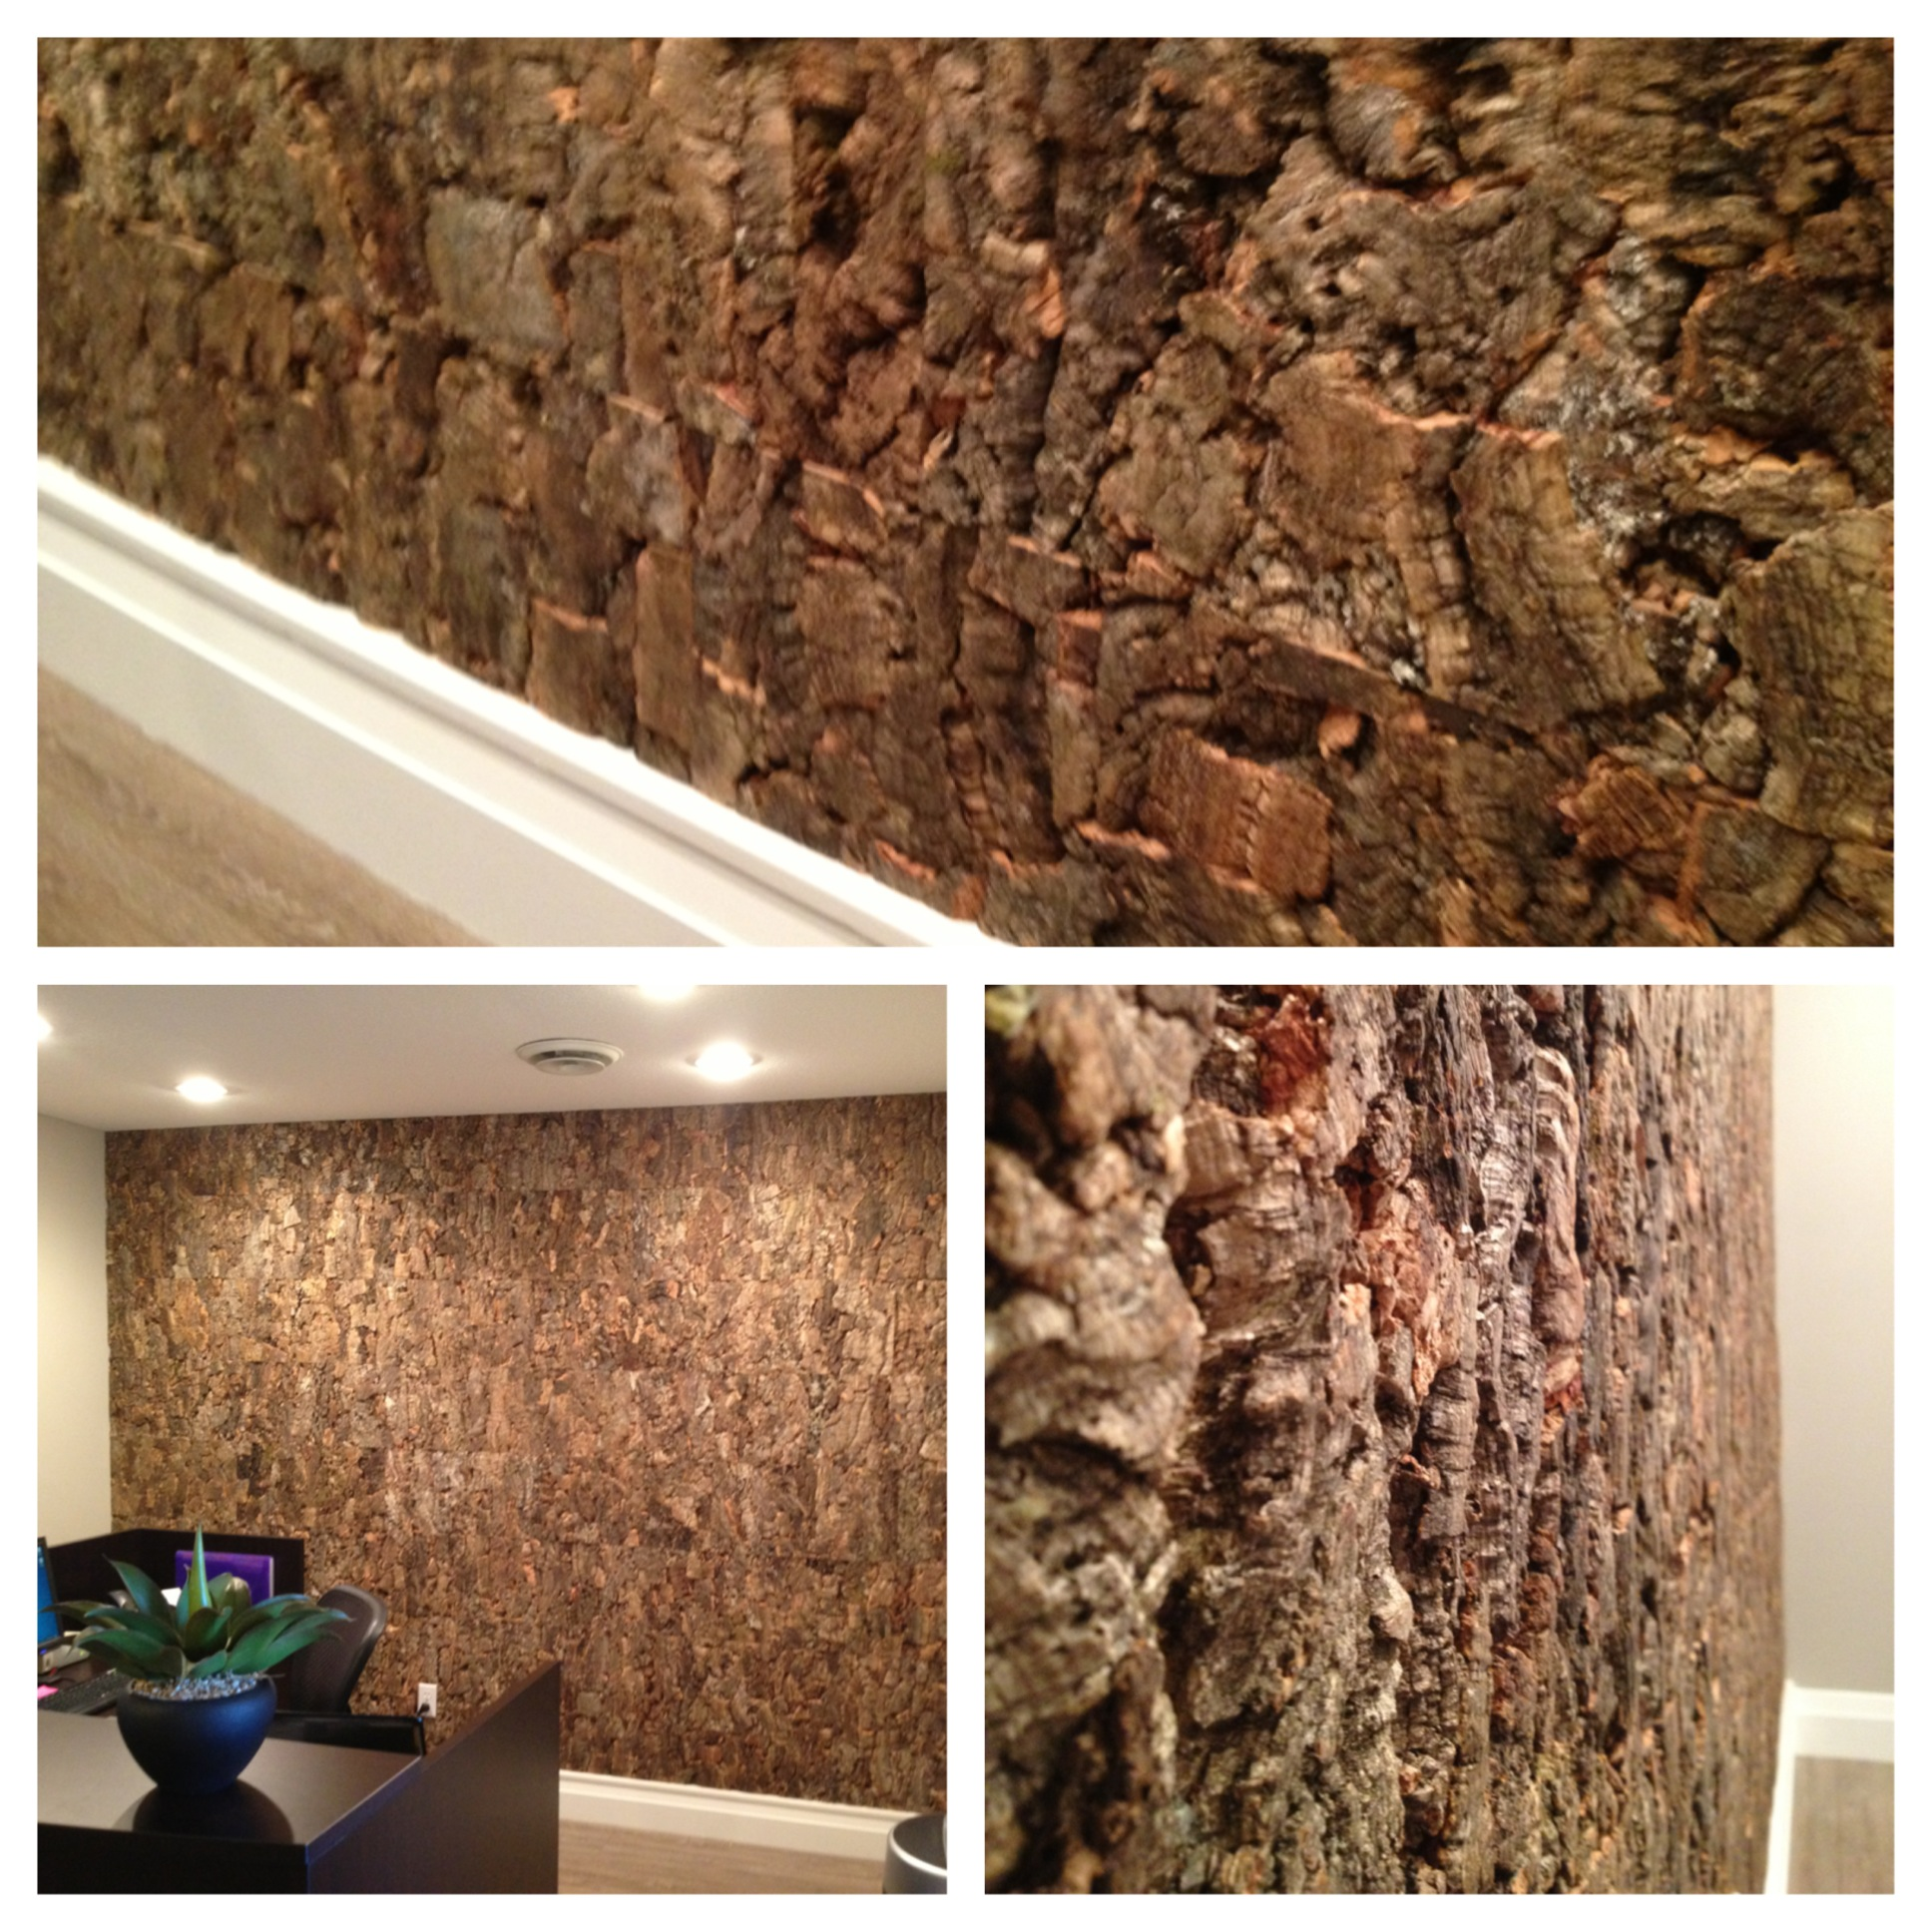 Outer Burl Cork Feature Wall Jb Interior Designs 2 The